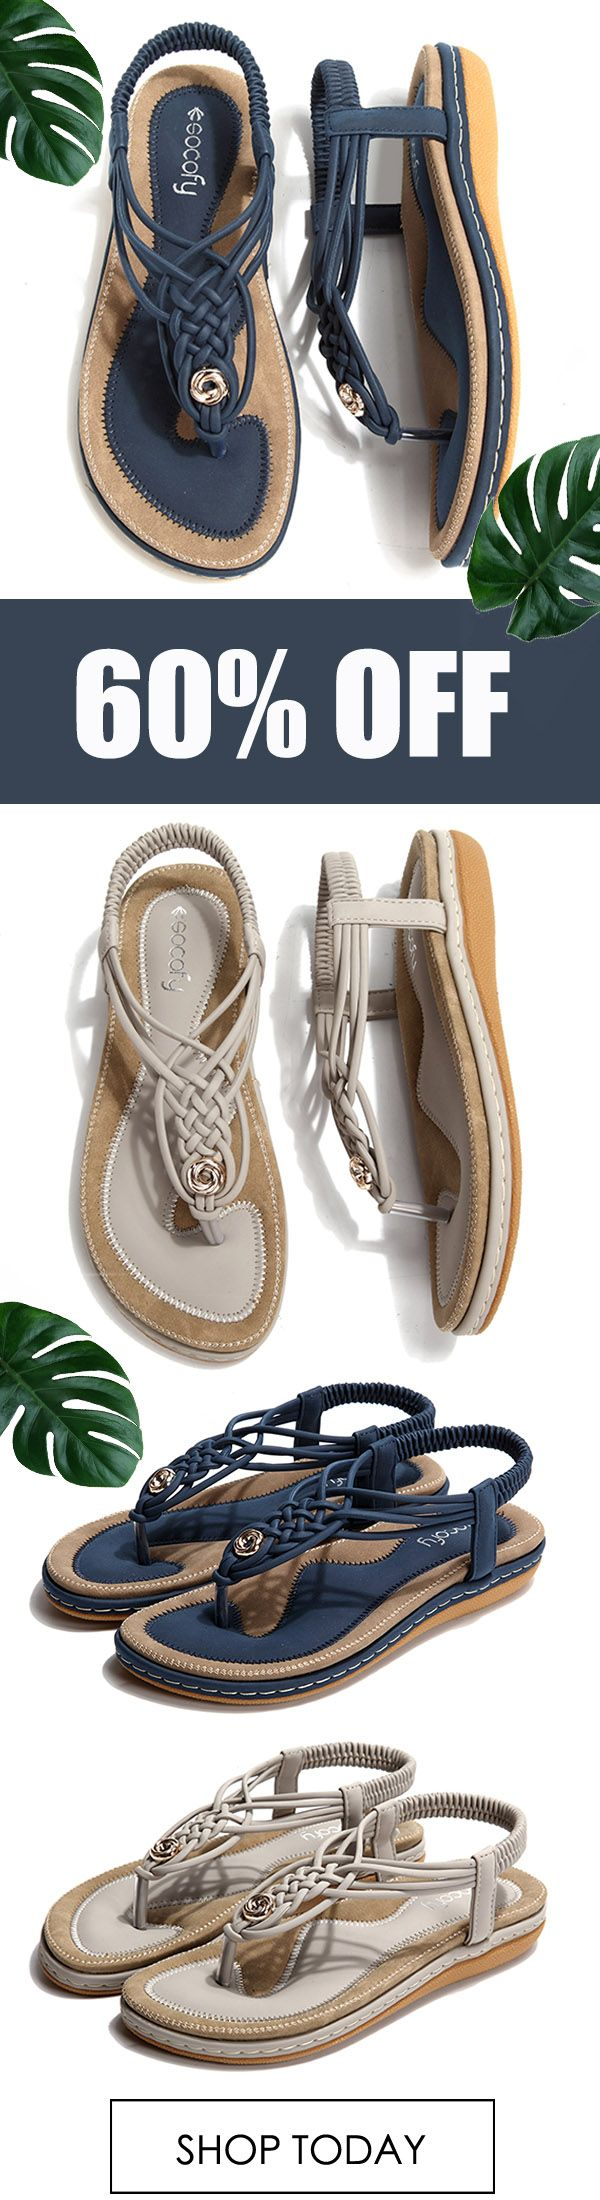 SOCOFY Large Size Women Shoe Knitted Casual Soft Sole Outdoor Beach Sandals. #summer